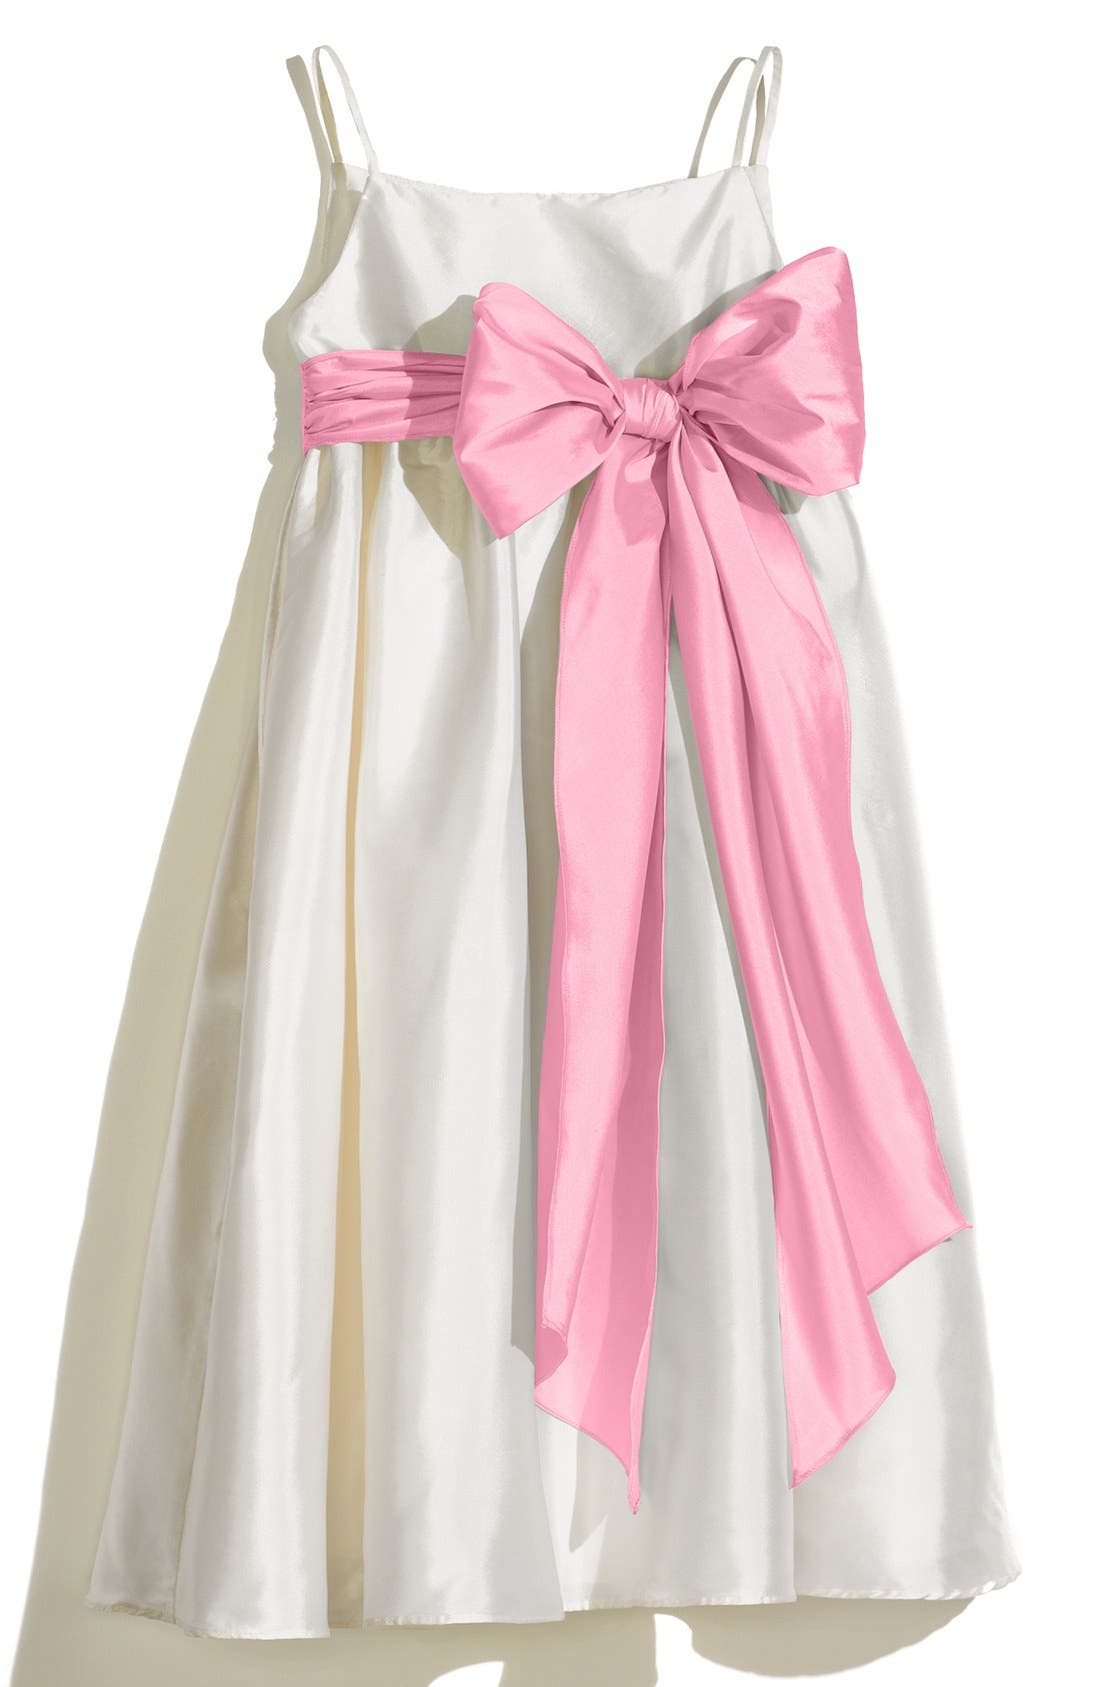 A-Line Dress with Sash,                         Main,                         color, Ivory/ Cotton Candy